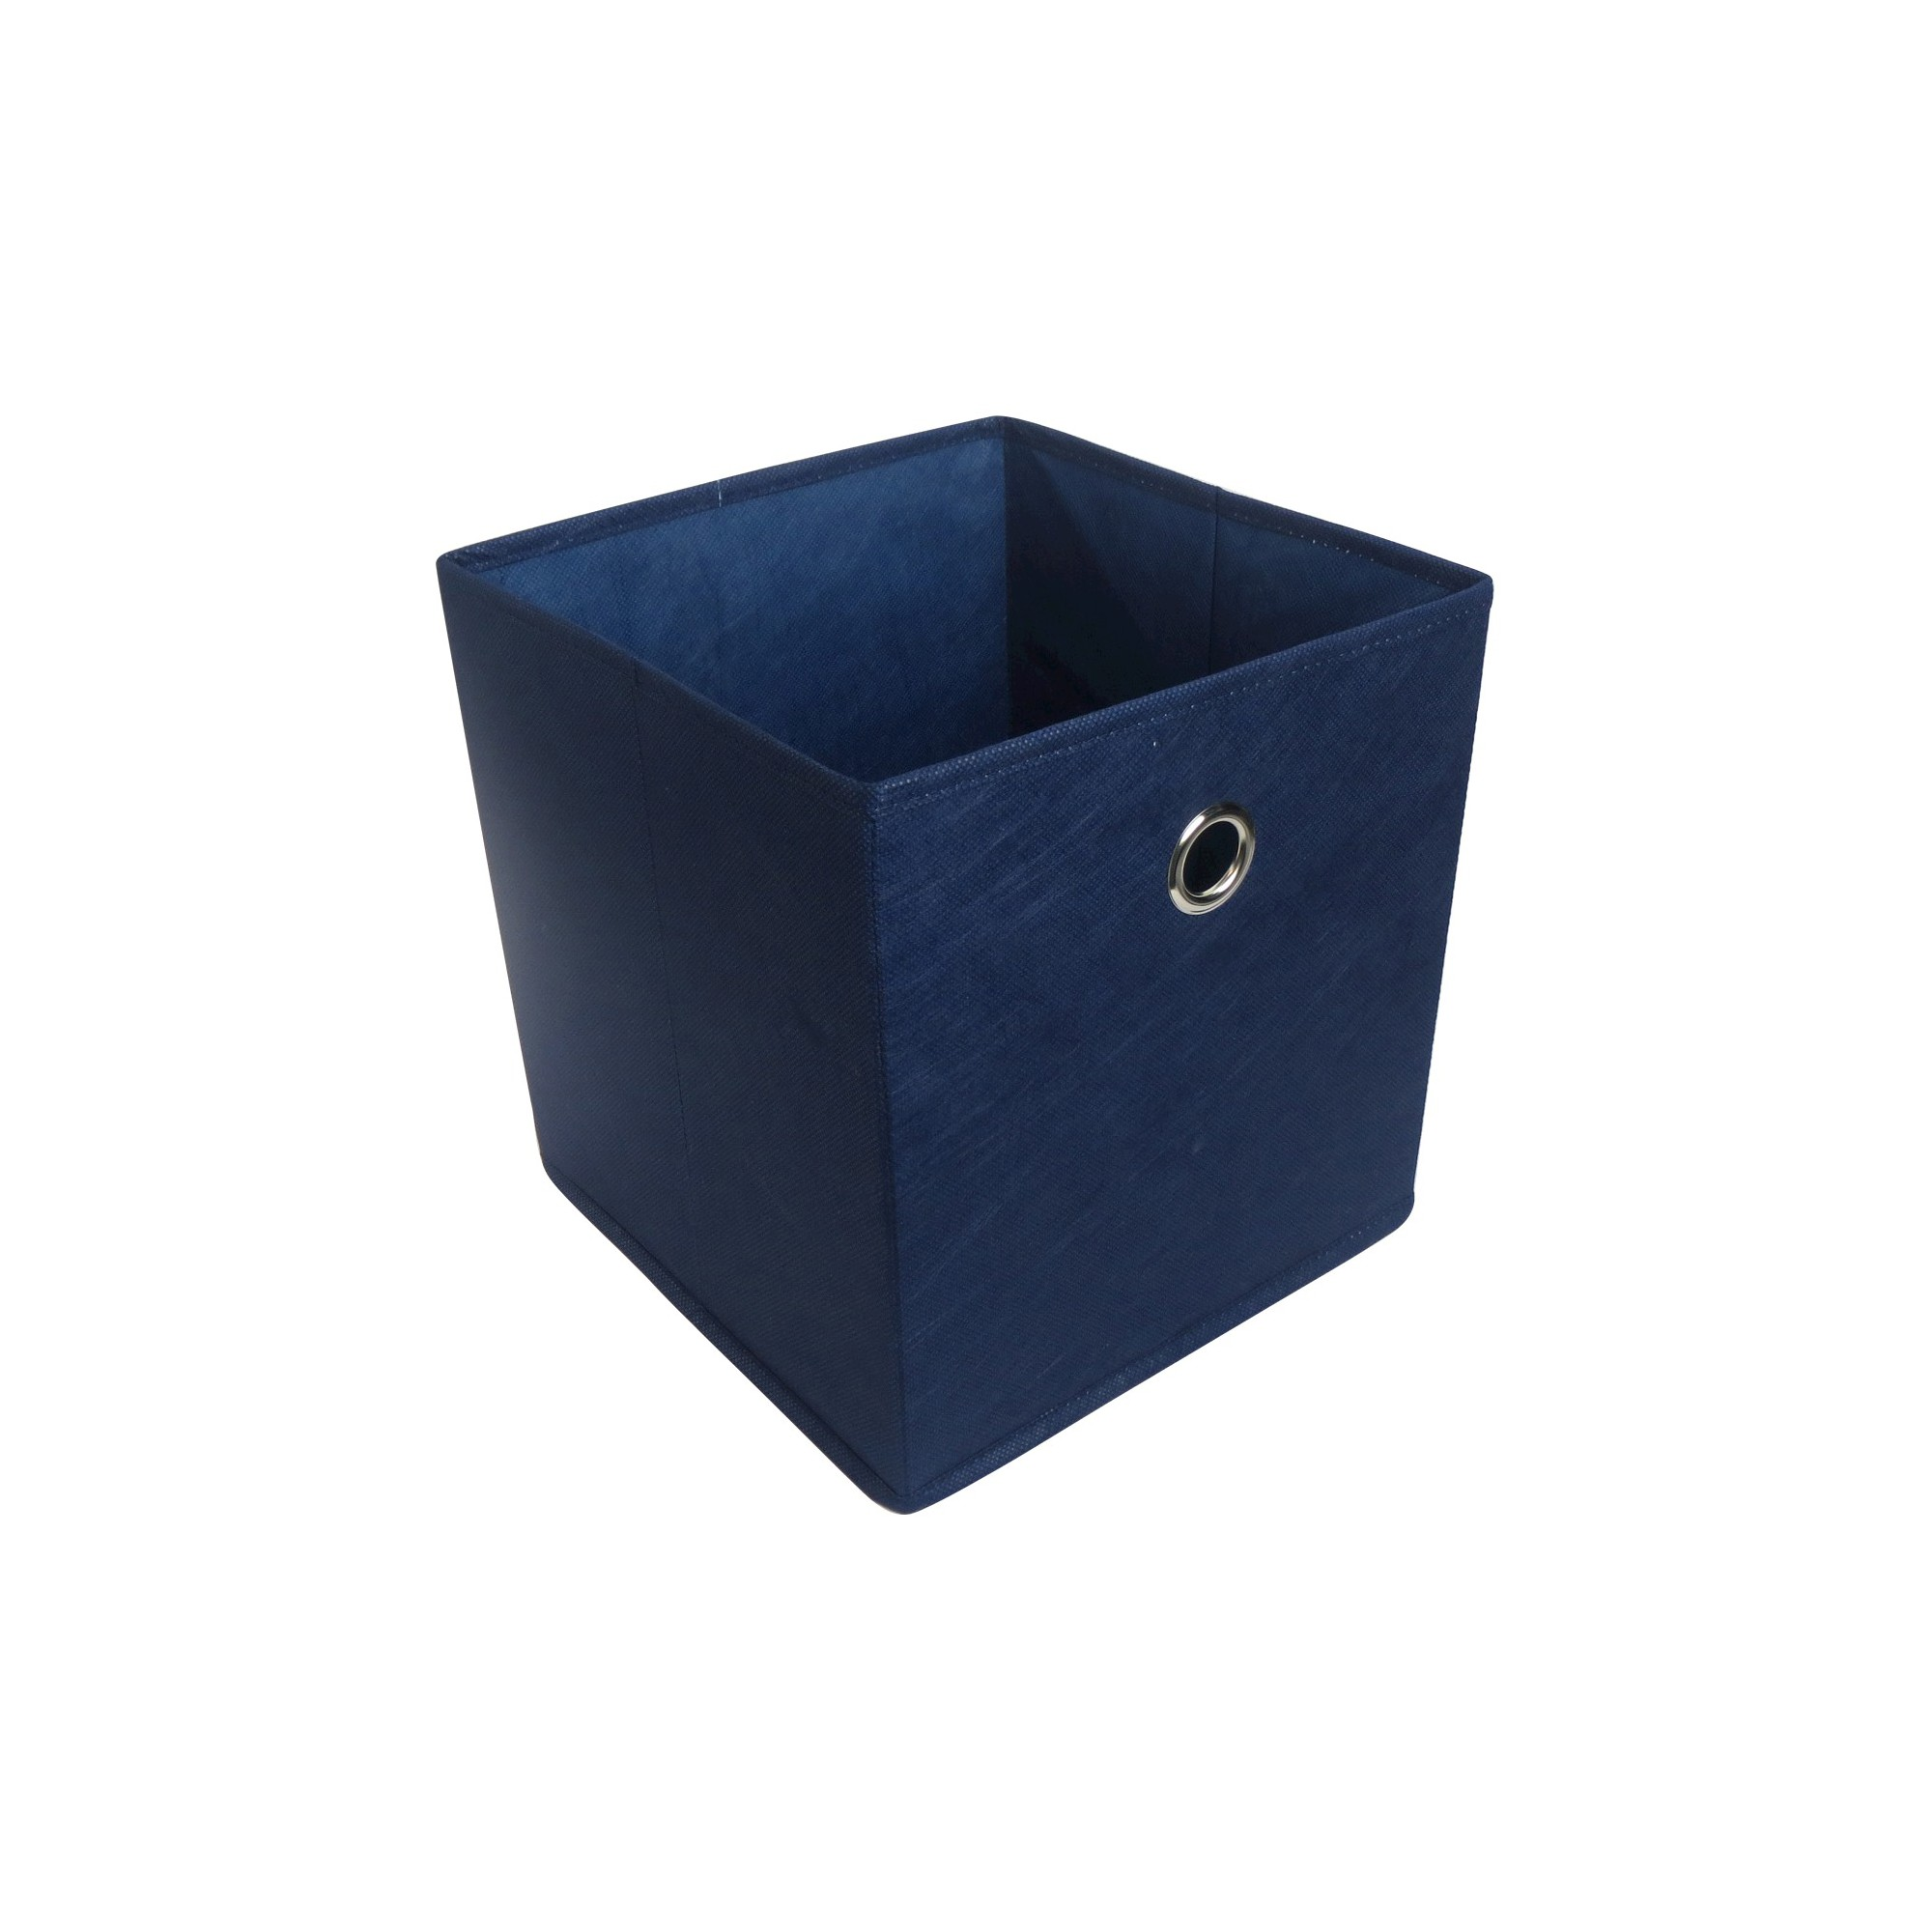 11 Fabric Cube Storage Bin Blue Room Essentials Room Essentials Cube Storage Storage Bins